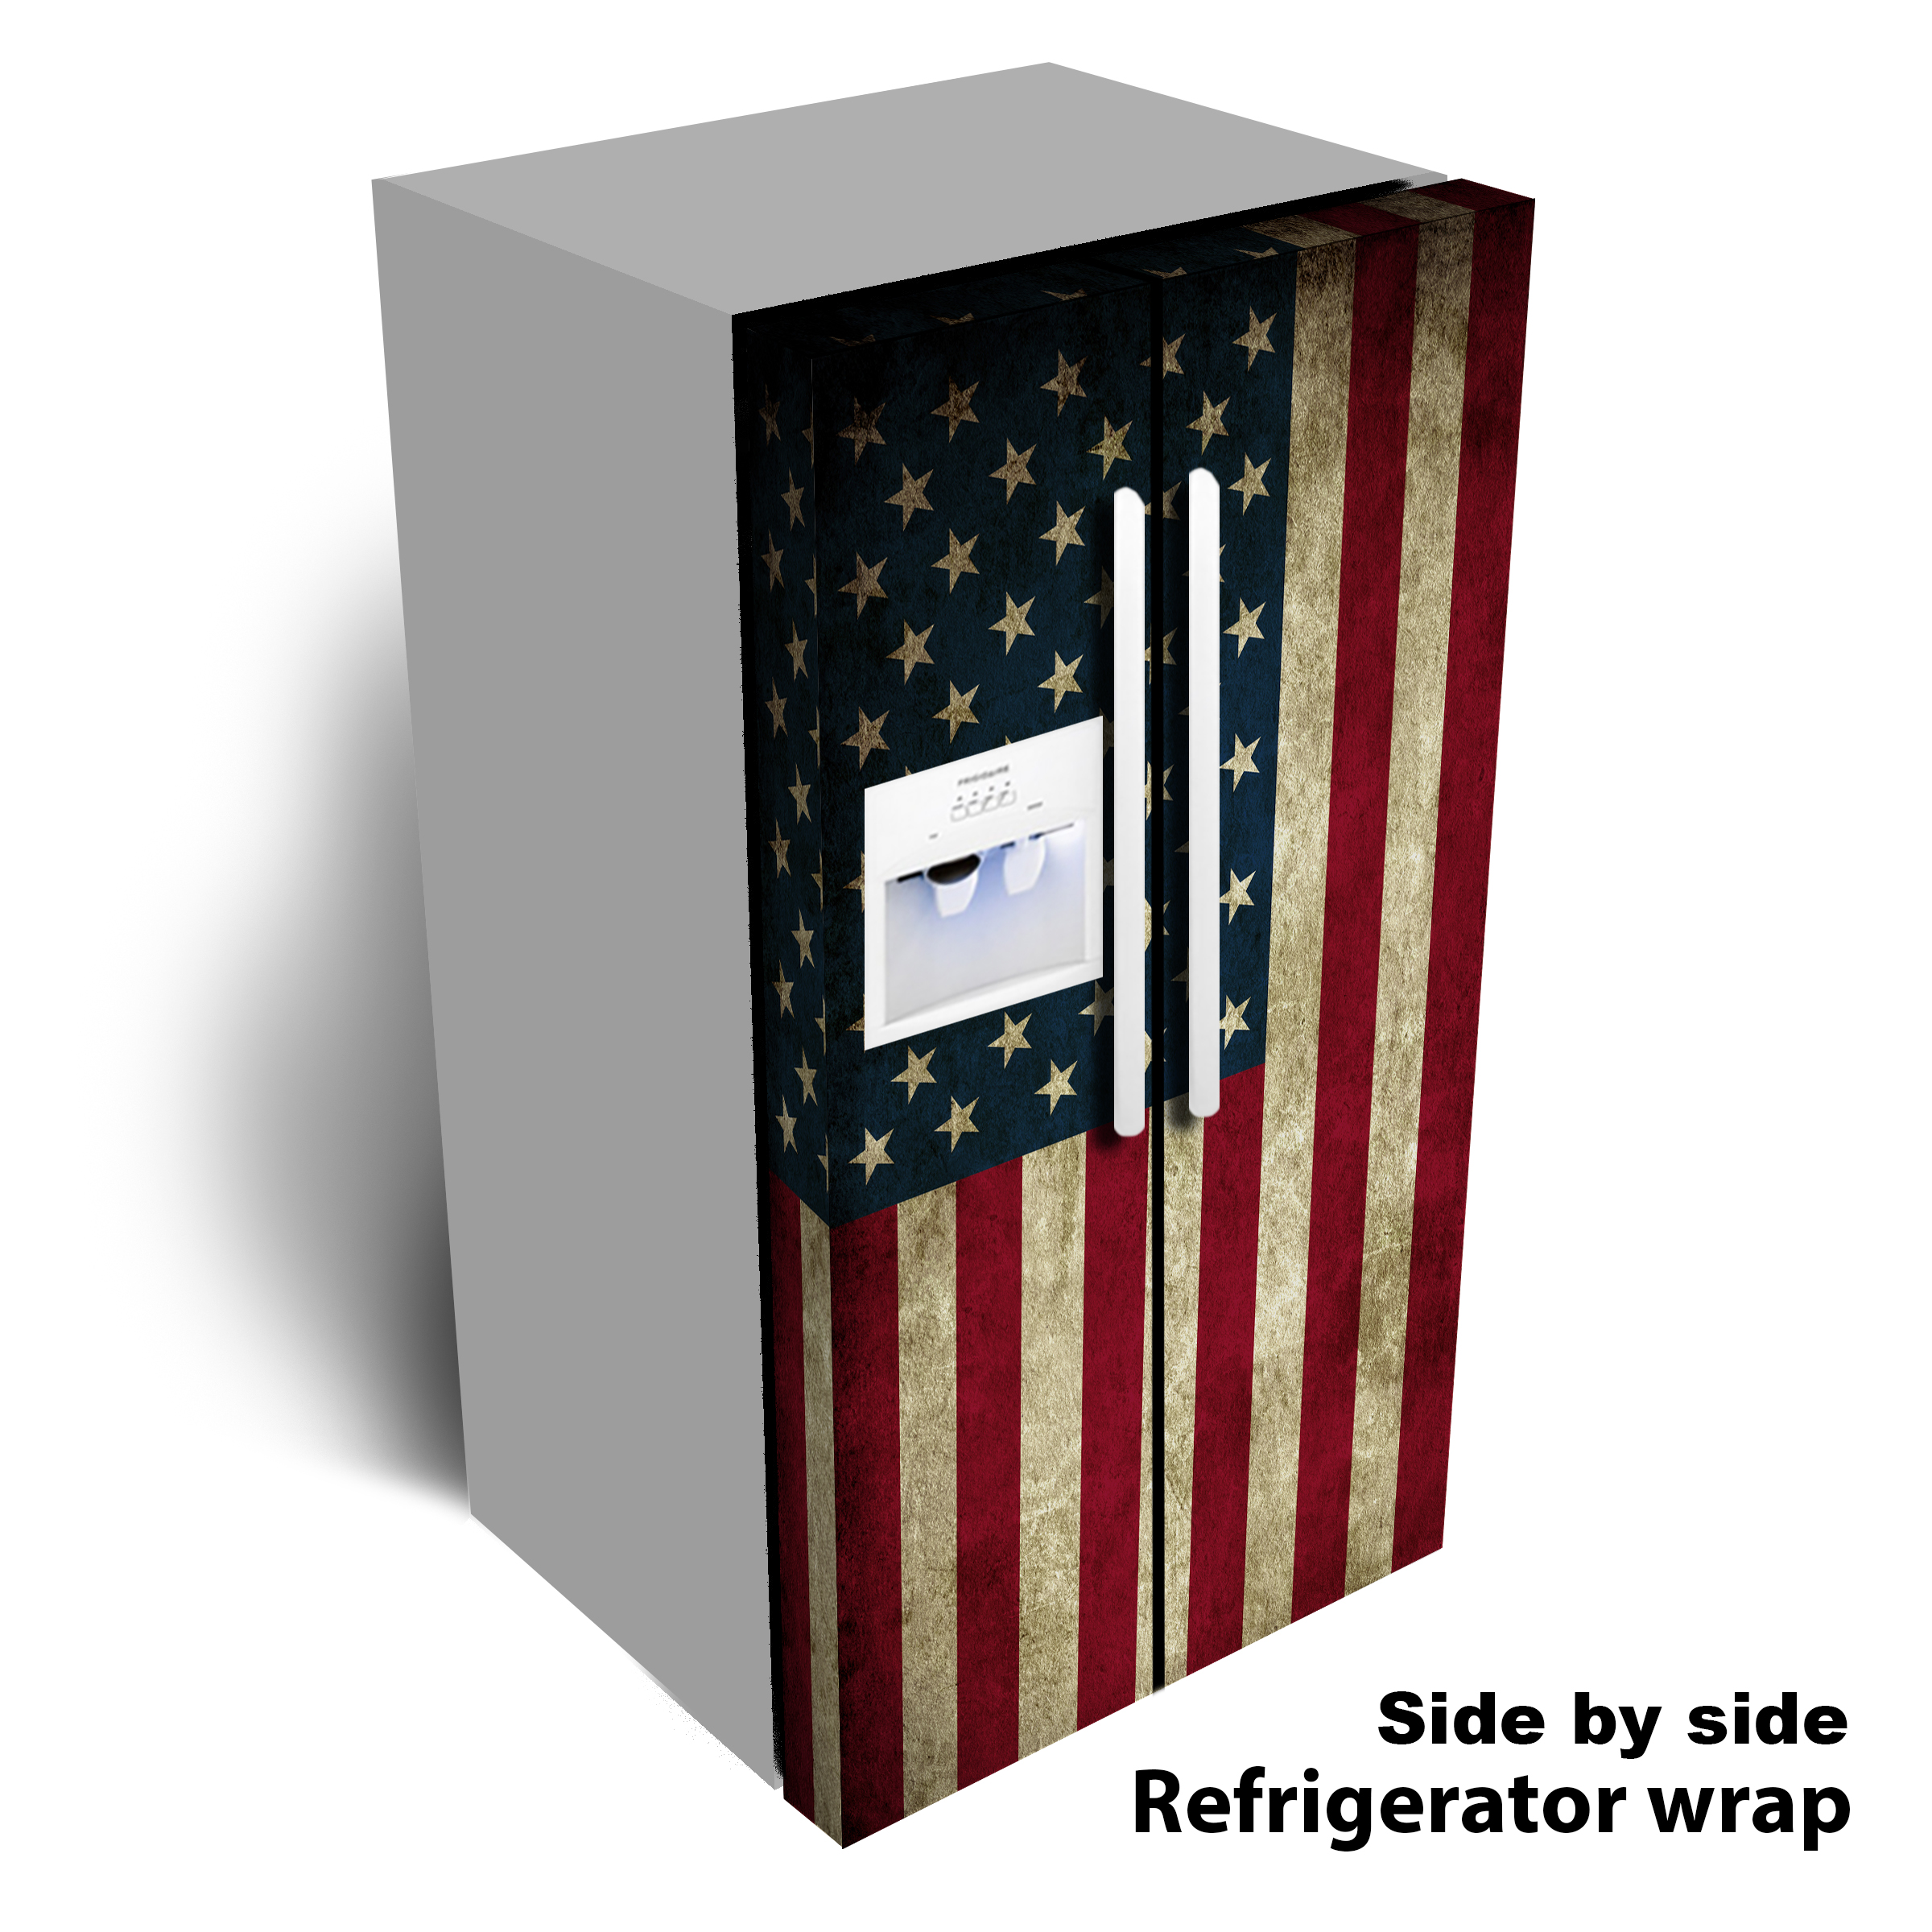 USA Flag worn refrigerator wrap